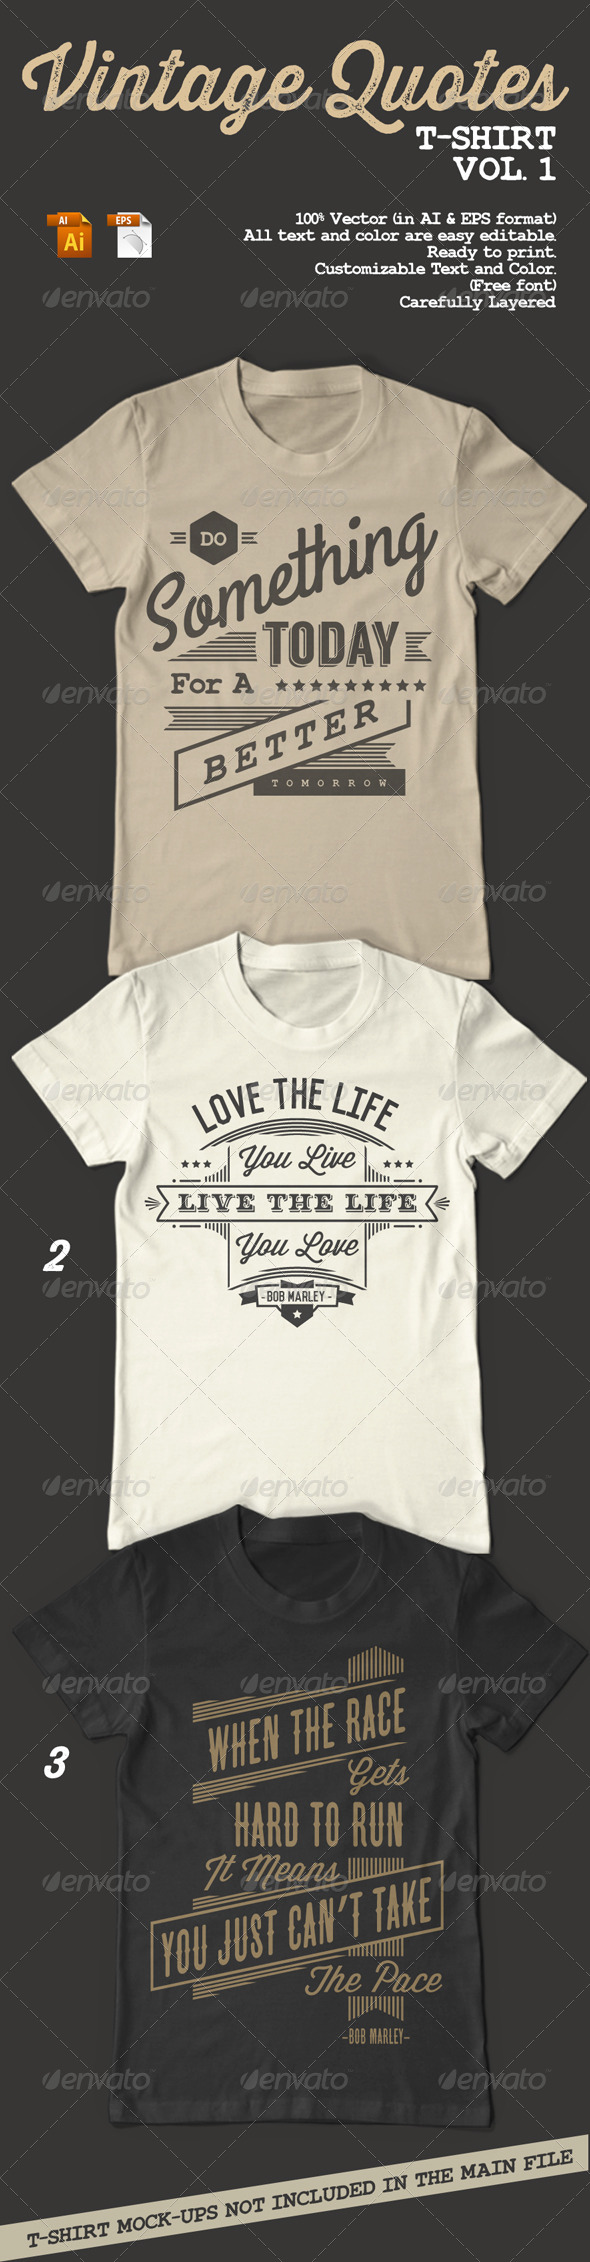 Vintage Quotes T-Shirt Vol. 1 - Designs T-Shirts